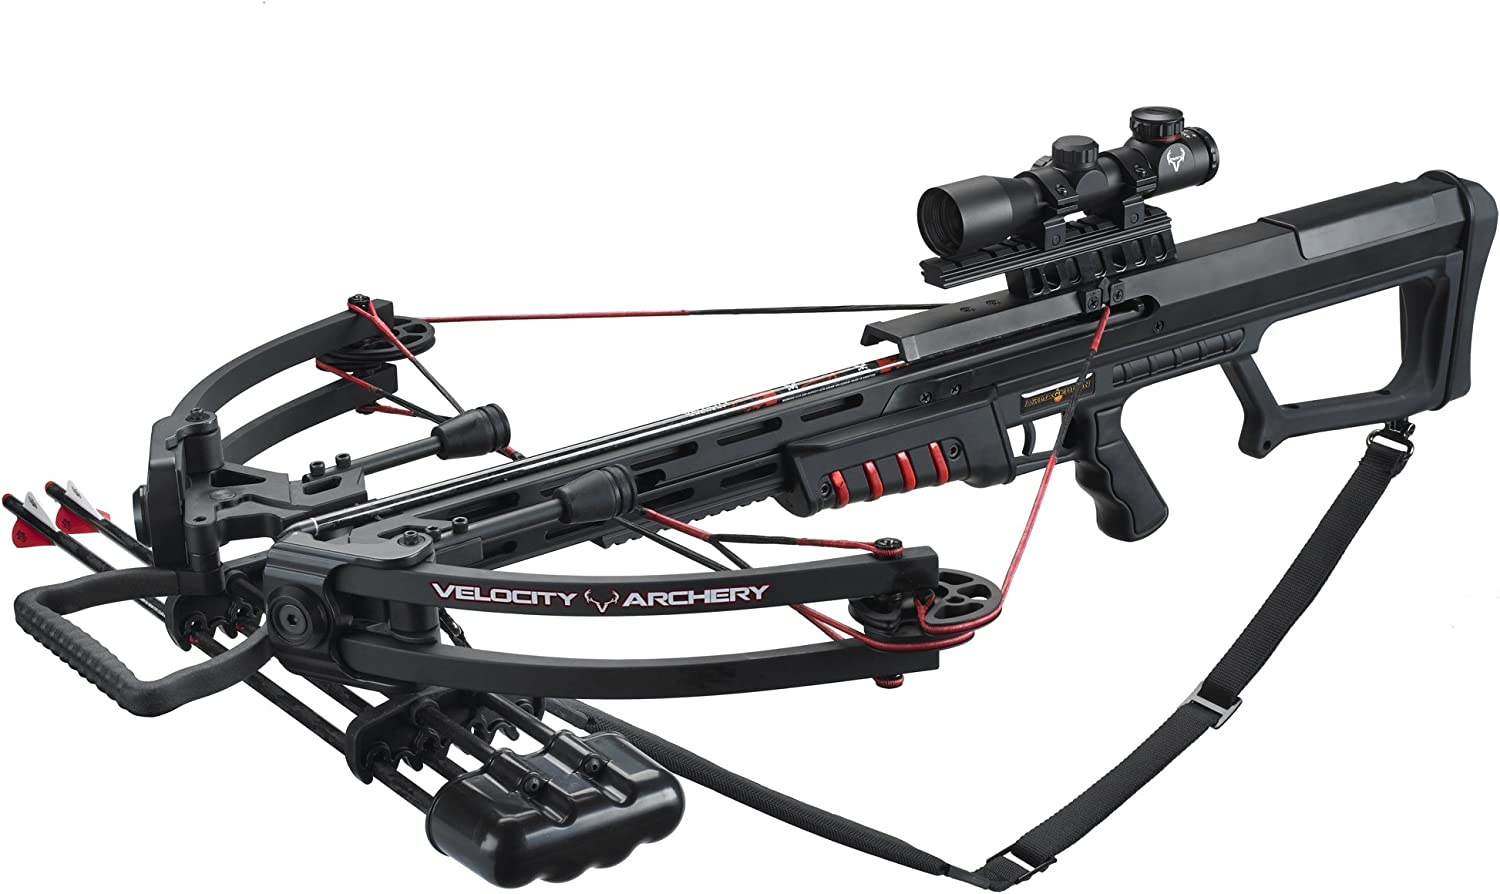 Velocity Archery Armageddon Cross Bow Package, Large, Black